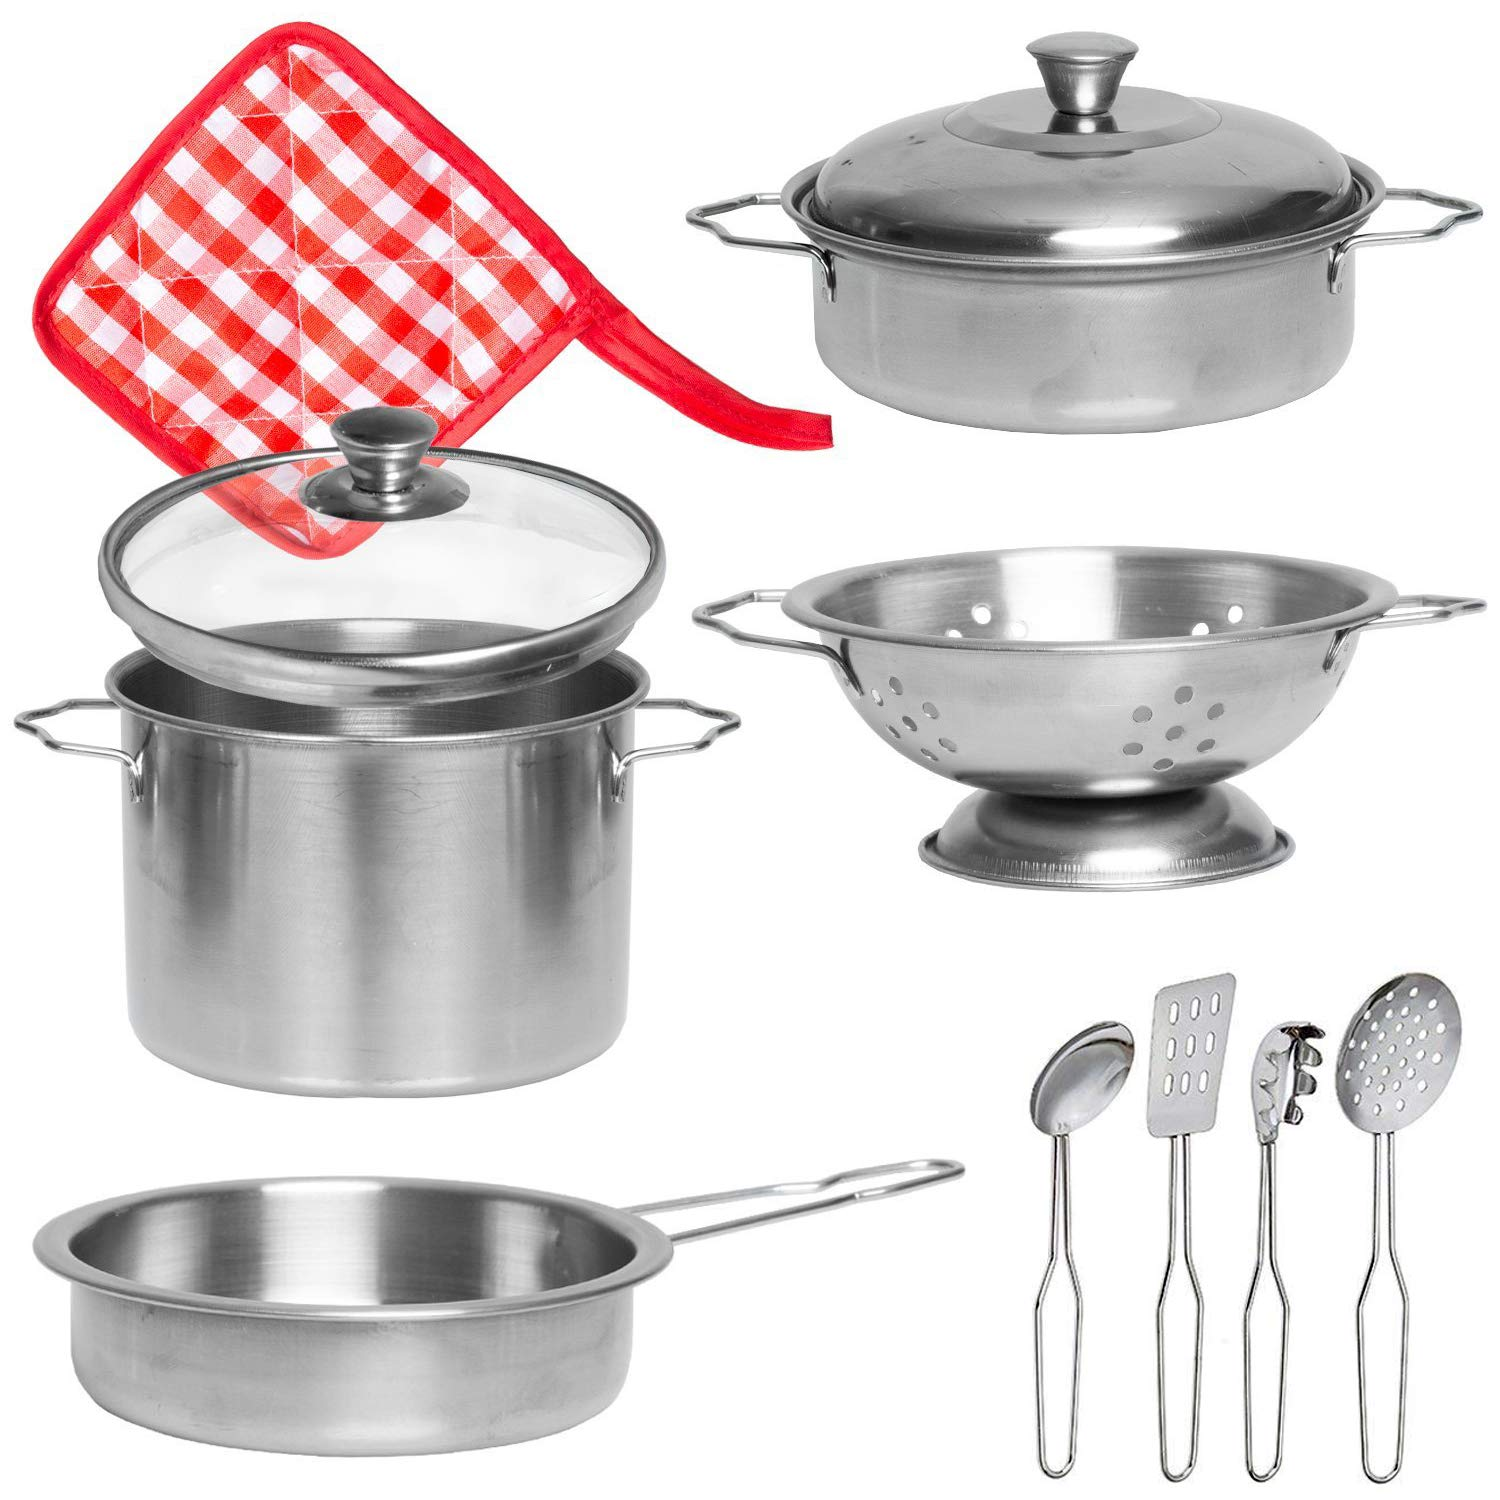 Amazon Com Liberty Imports Stainless Steel Metal Pots And Pans Kitchen Cookware Playset For Kids With Cooking Utensils Set Toys Games